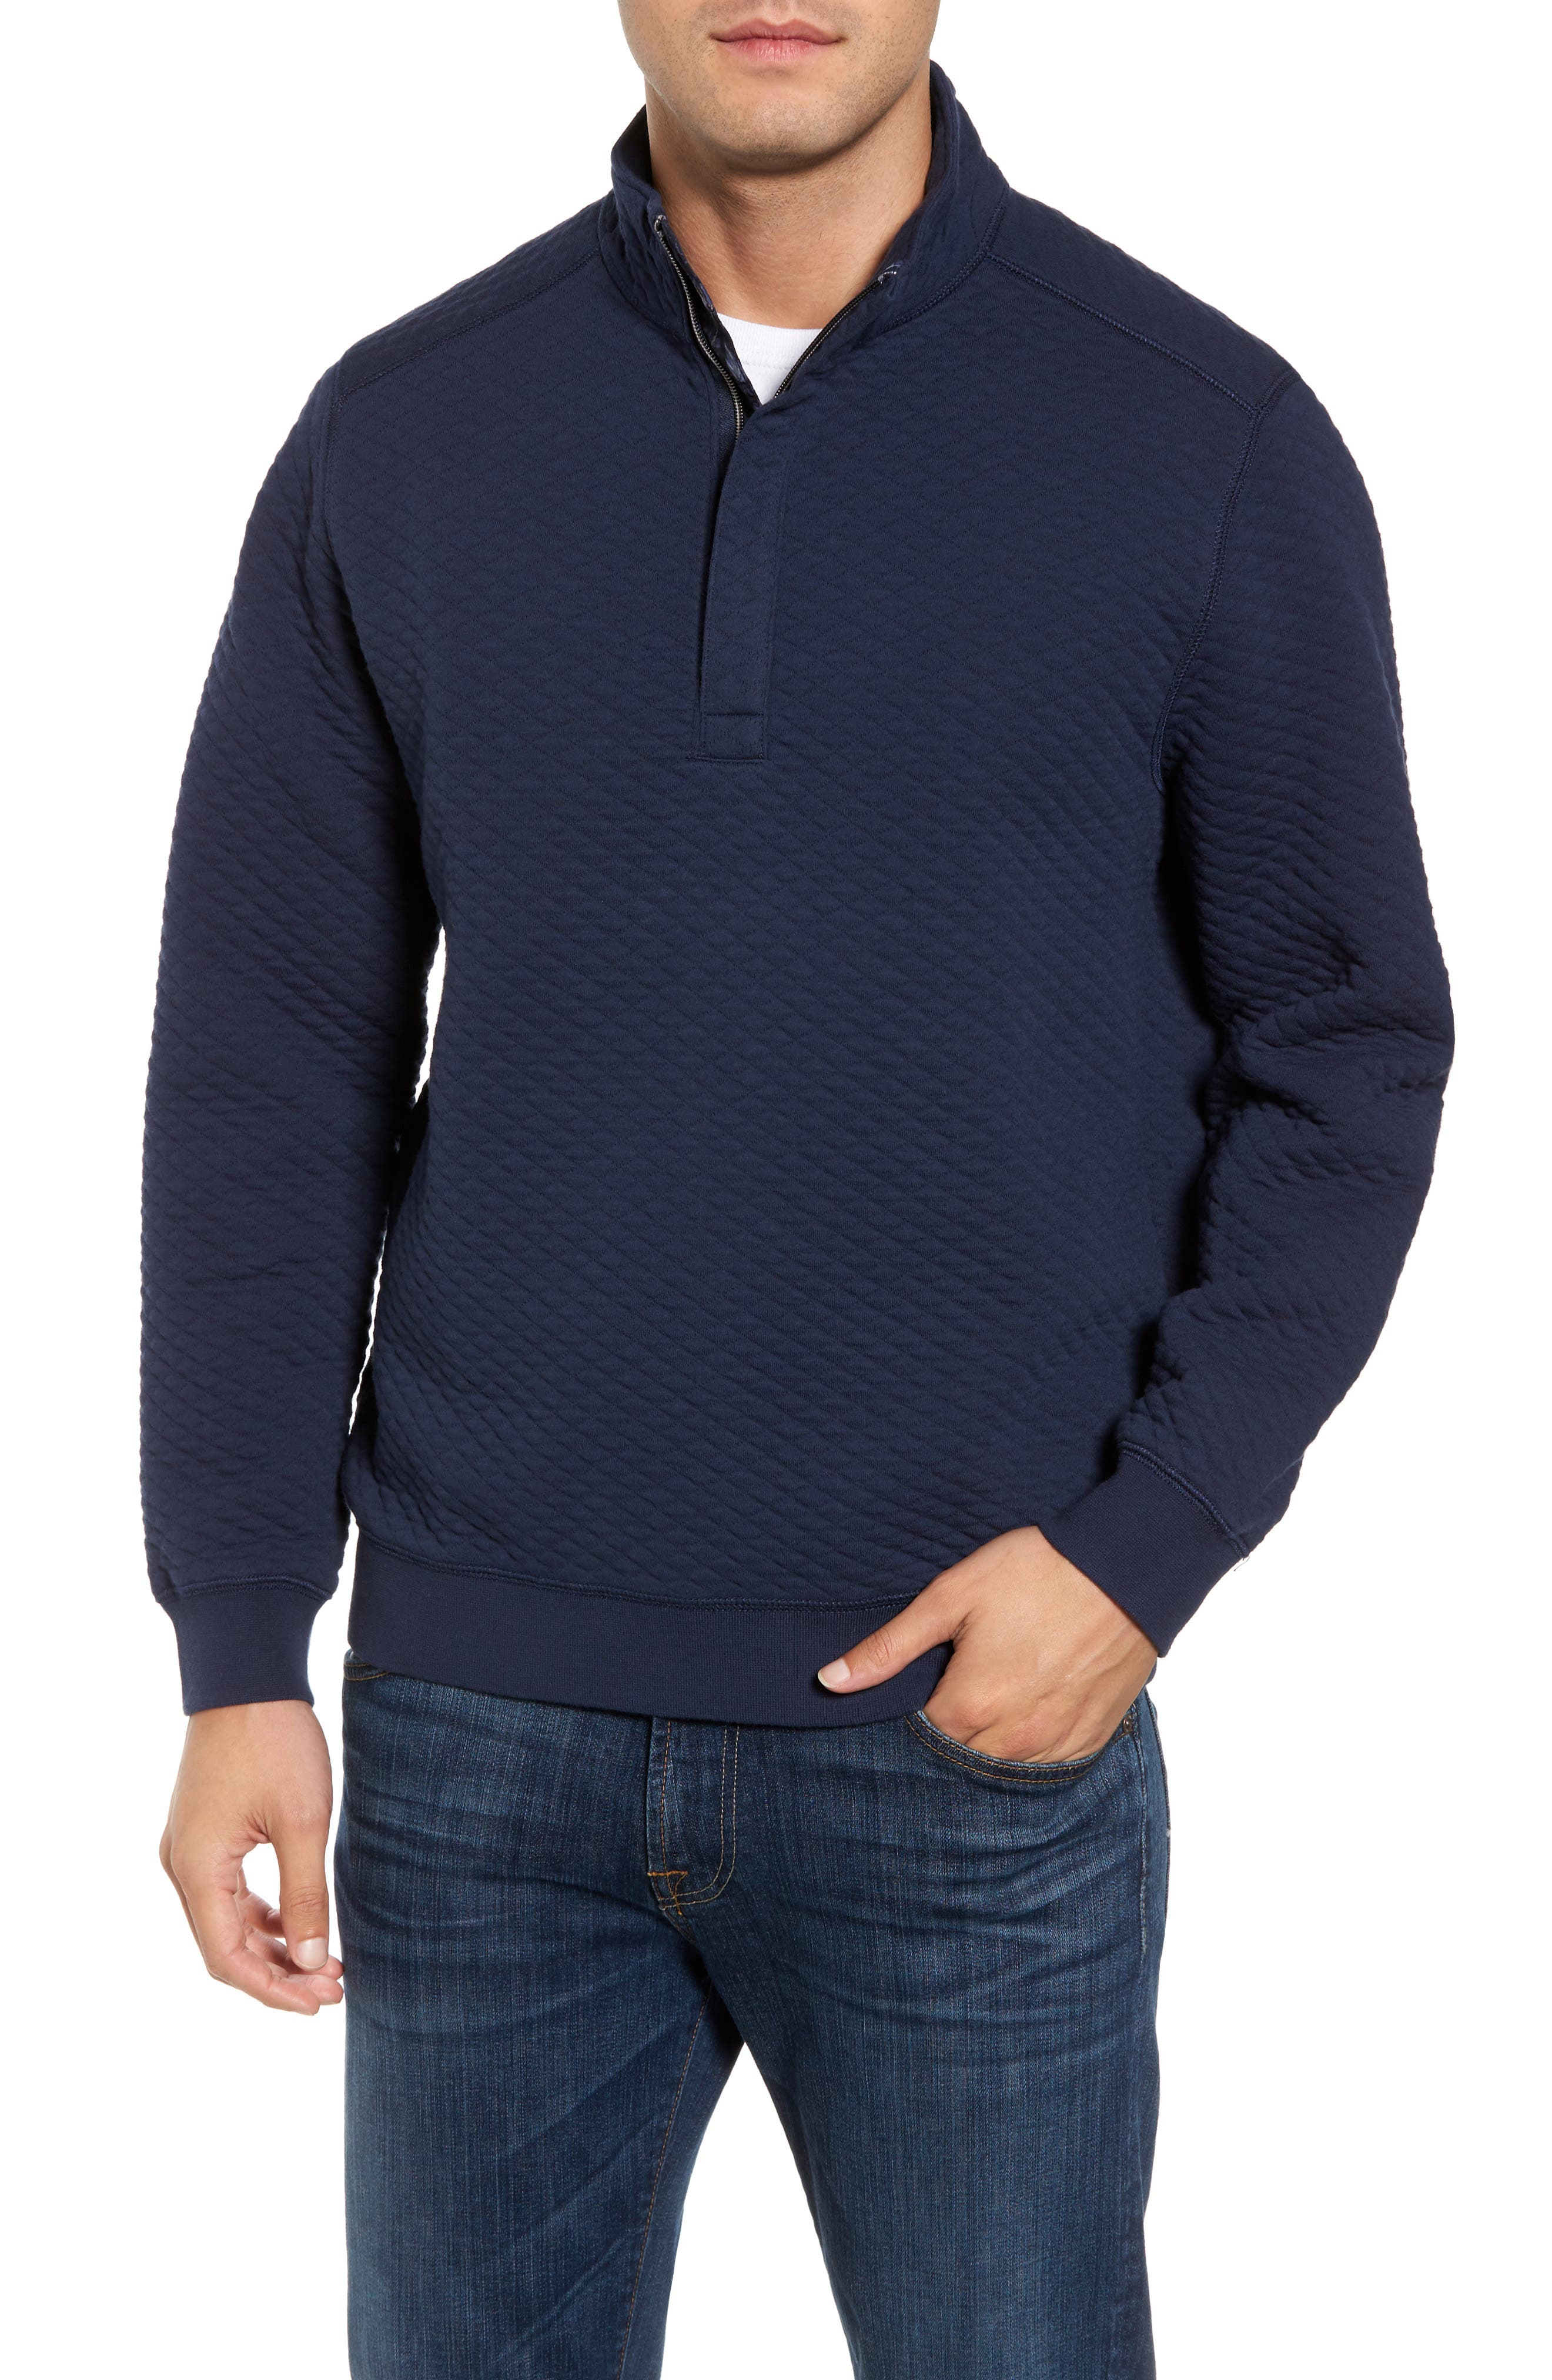 Alternate Image 1 Selected - Tommy Bahama Quiltessential Standard Fit Quarter Zip Pullover